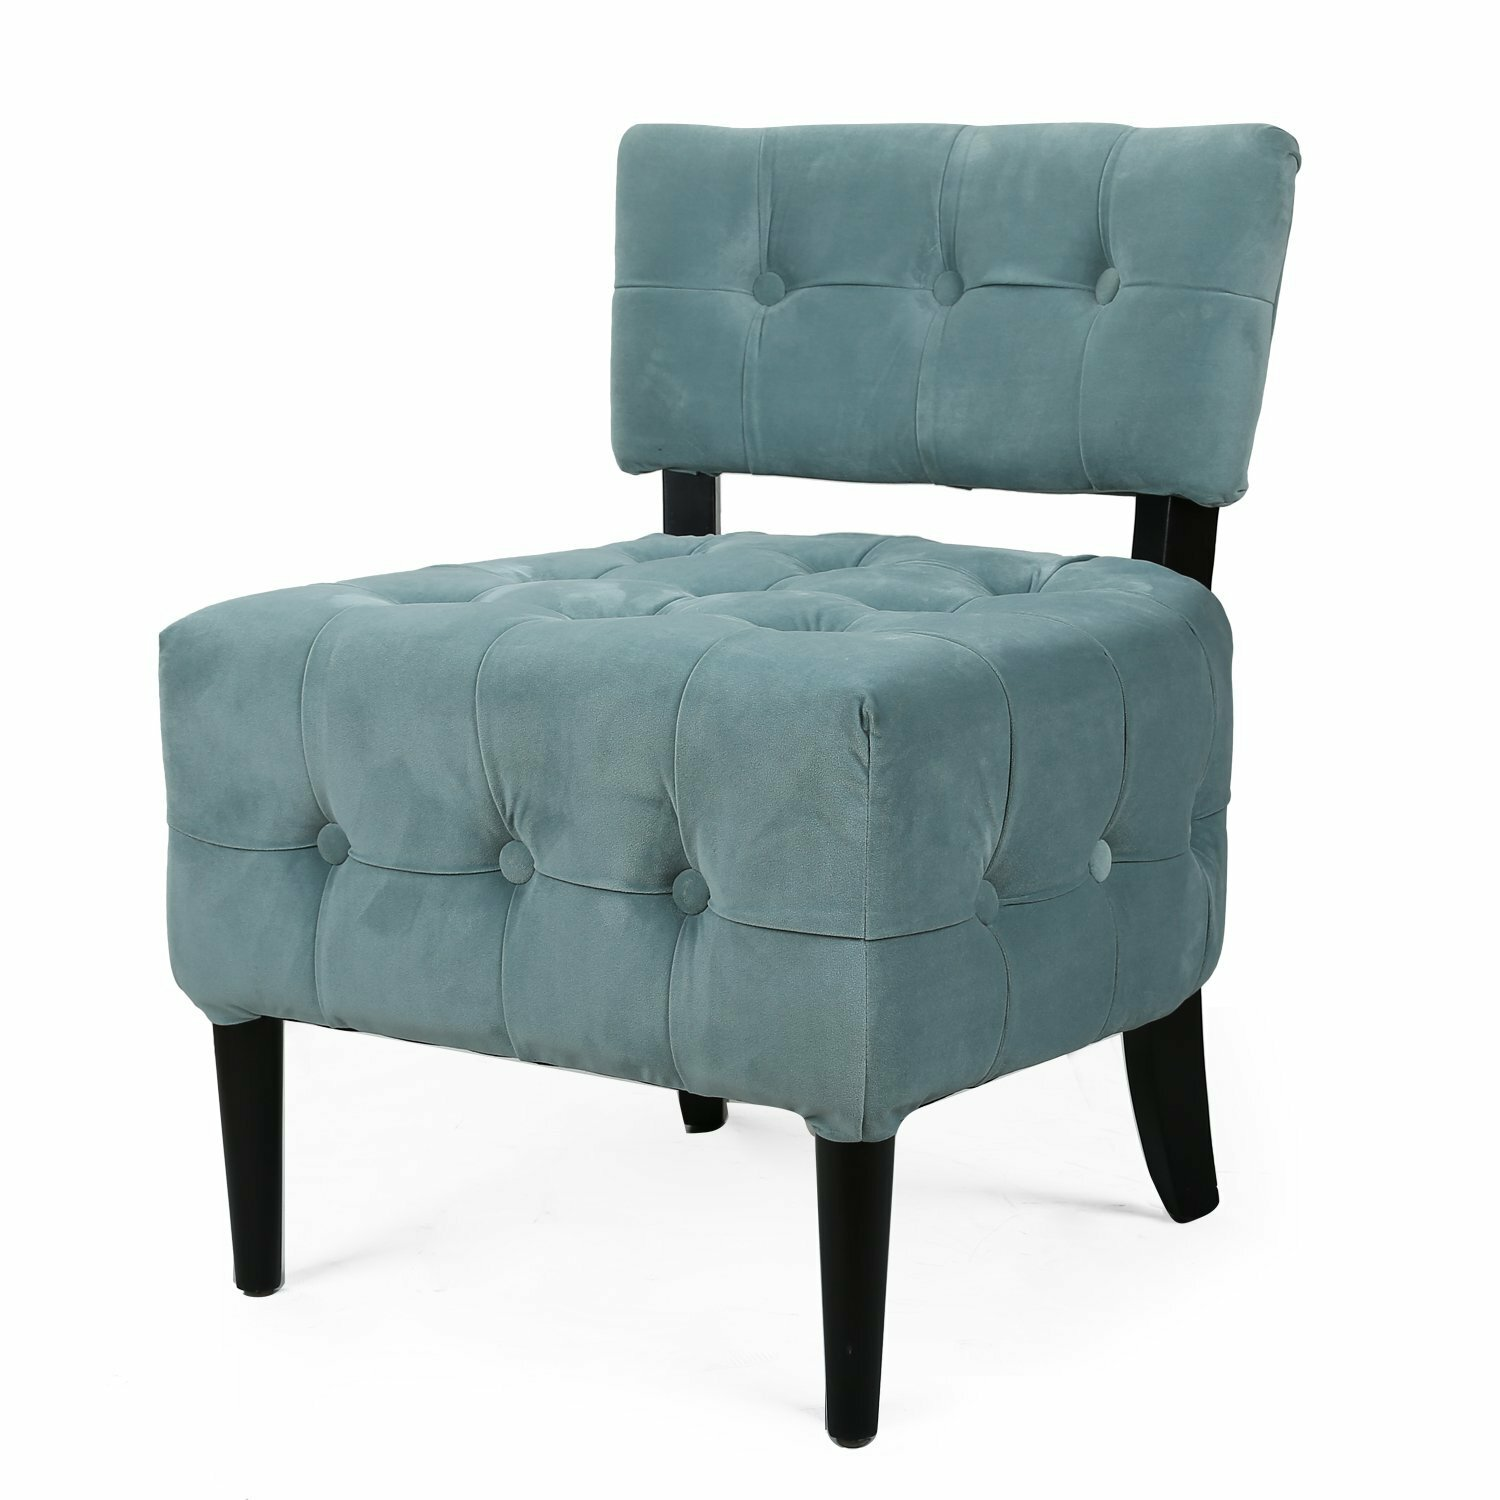 Furniture accent furniture side accent chairs adecotrading sku